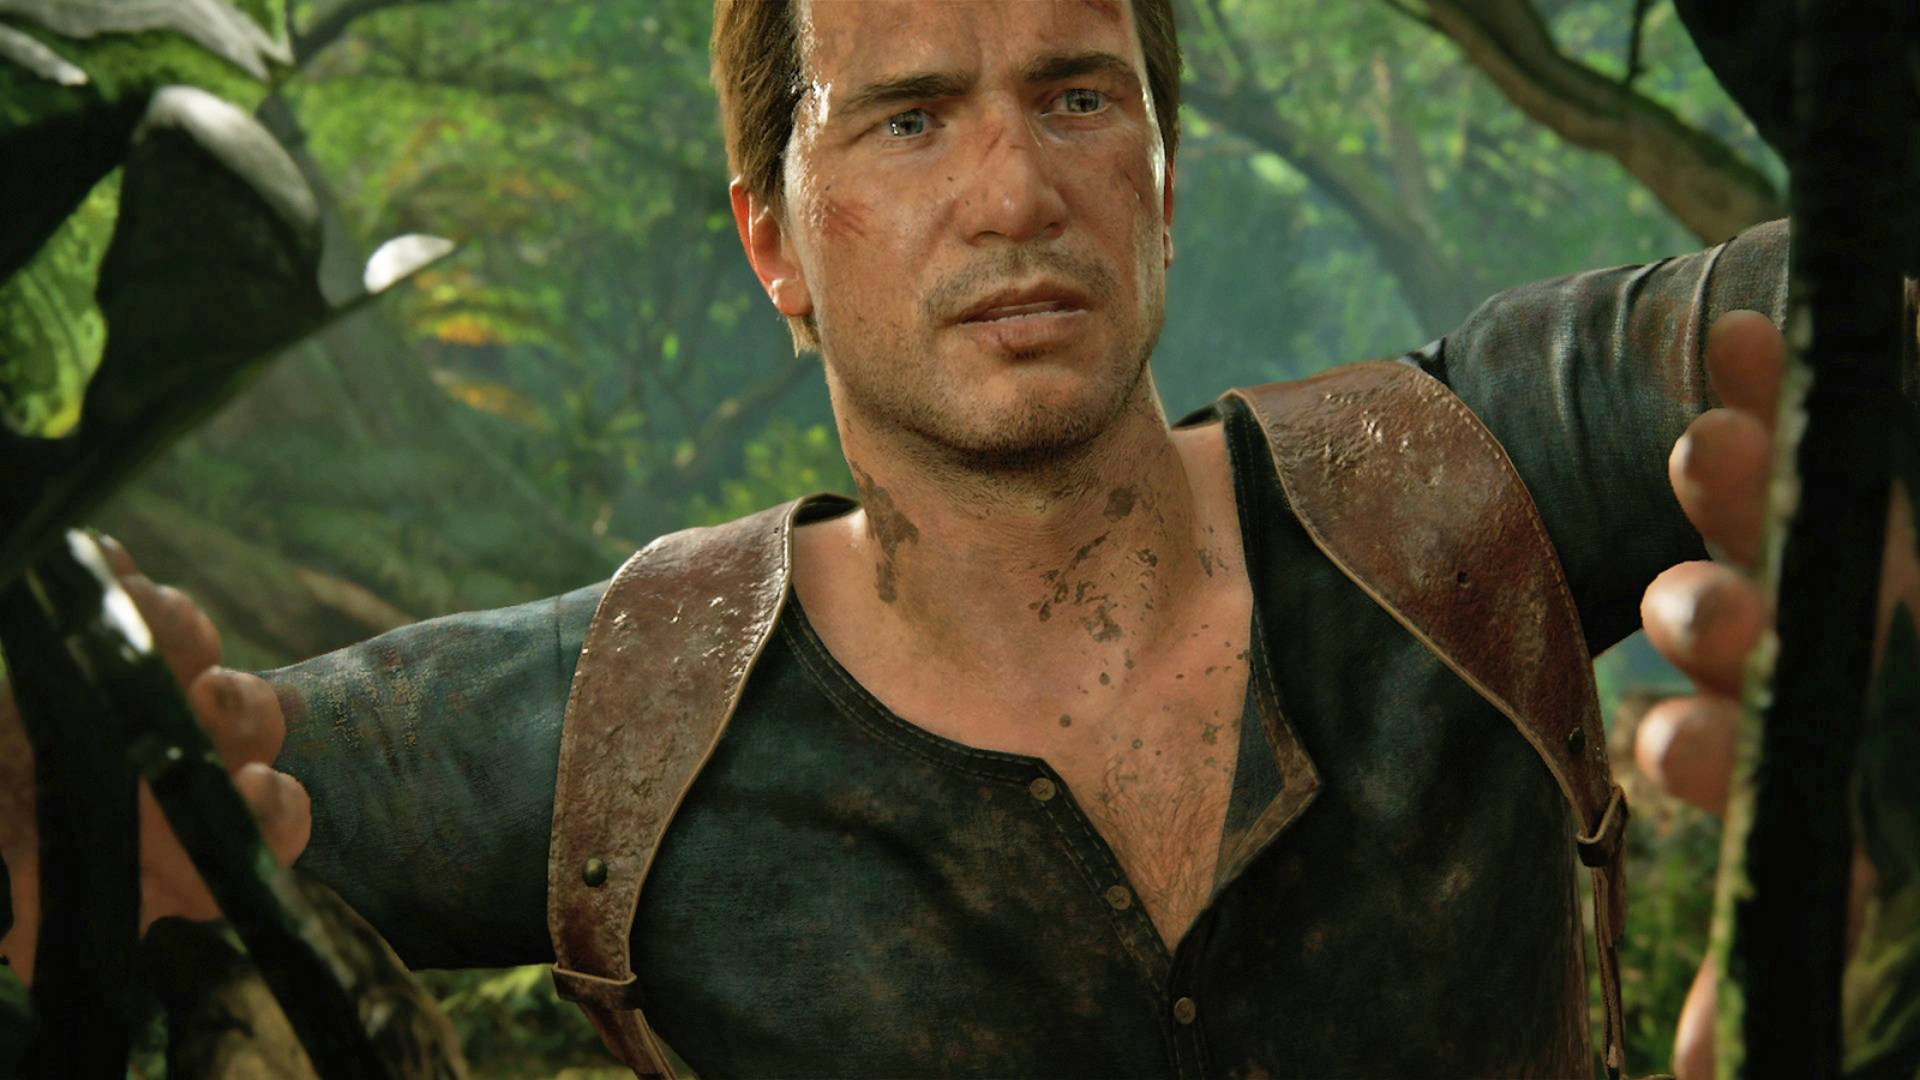 Uncharted 4 PS4 Pro 4k vs 1080p gameplay comparison